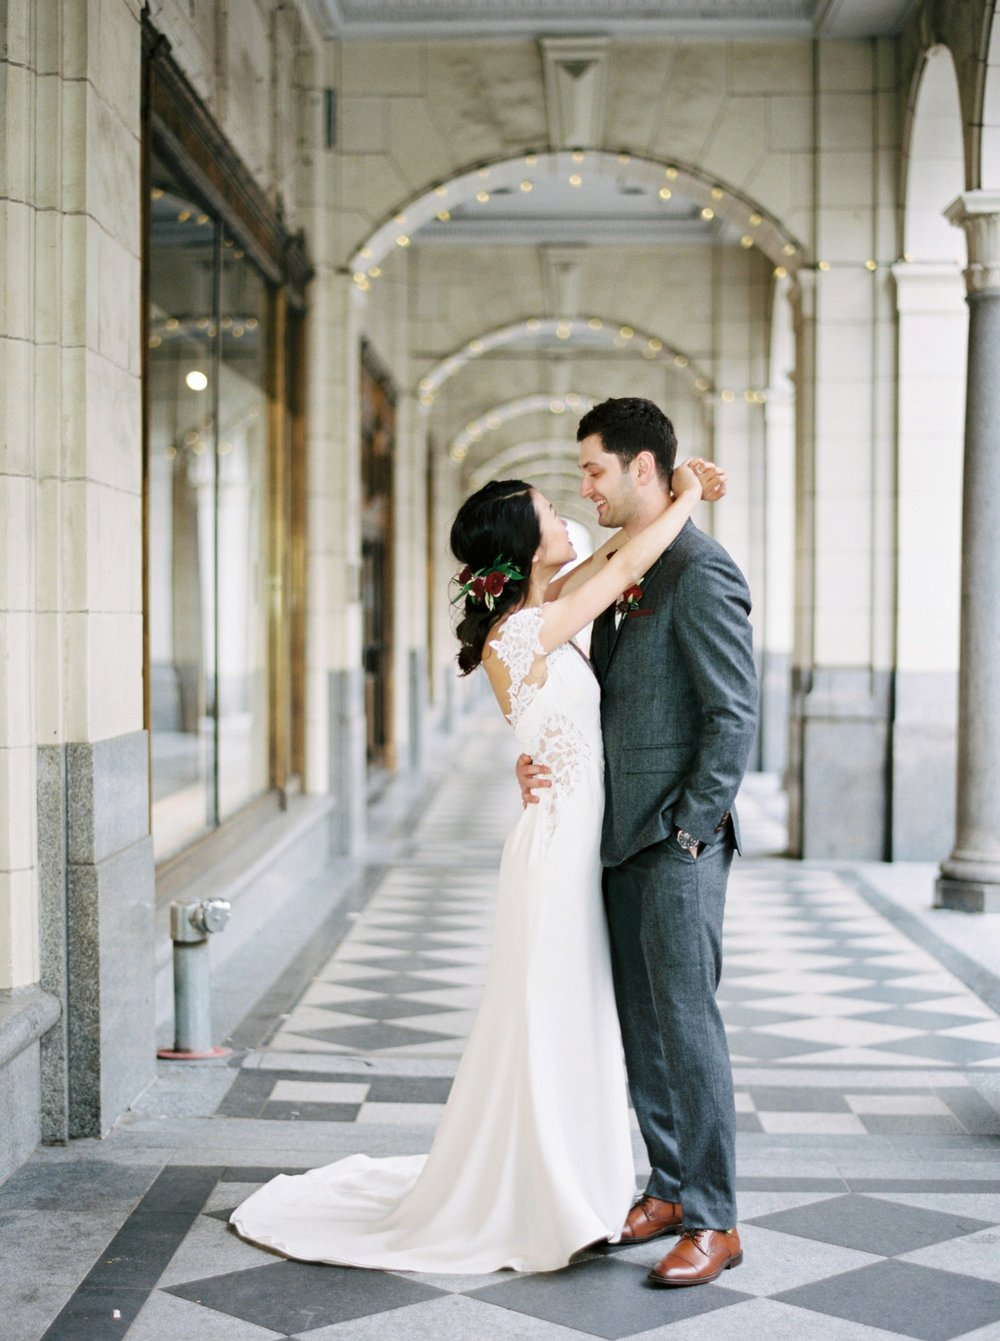 Calgary wedding photographer | fine art film photography | Calgary Wedding Photographers | Calgary couples photographer | Justine Milton Photography | workshop wedding | couples portrait